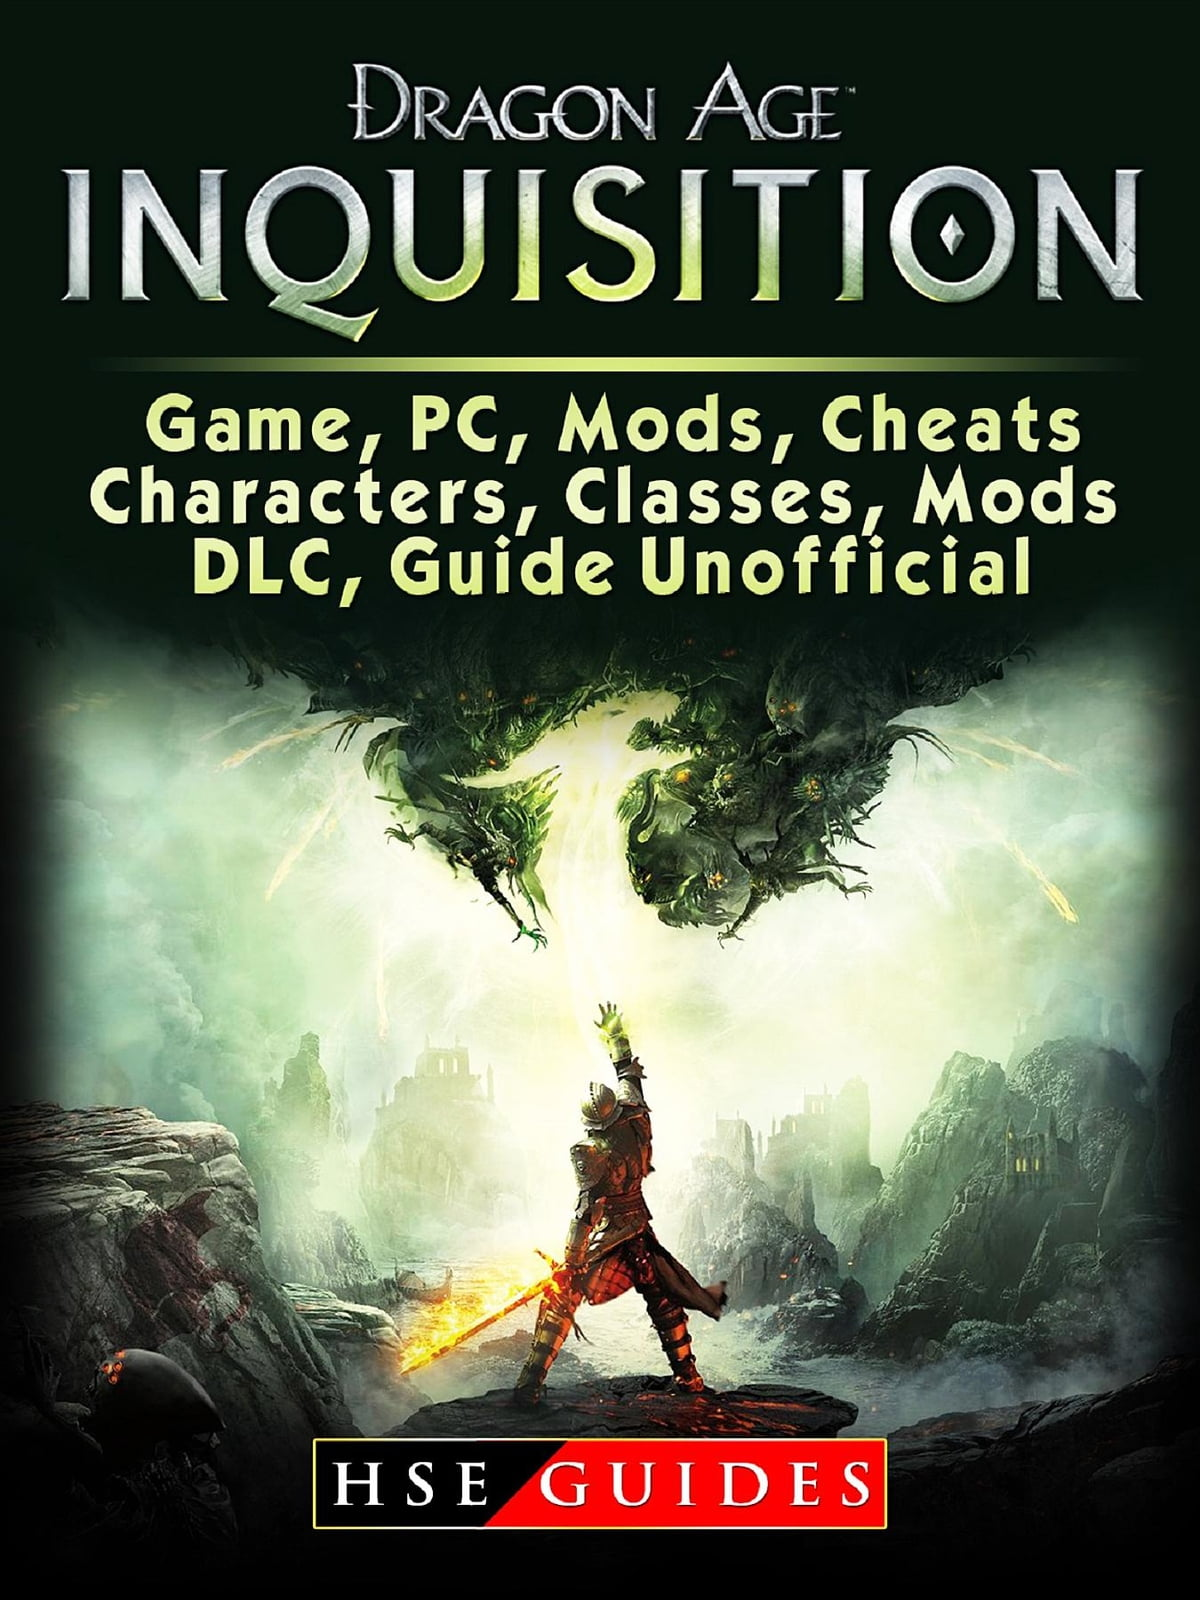 Dragon Age Inquisition Game, PC, Mods, Cheats, Characters, Classes, Mods,  DLC, Guide Unofficial ebook by HSE Guides - Rakuten Kobo